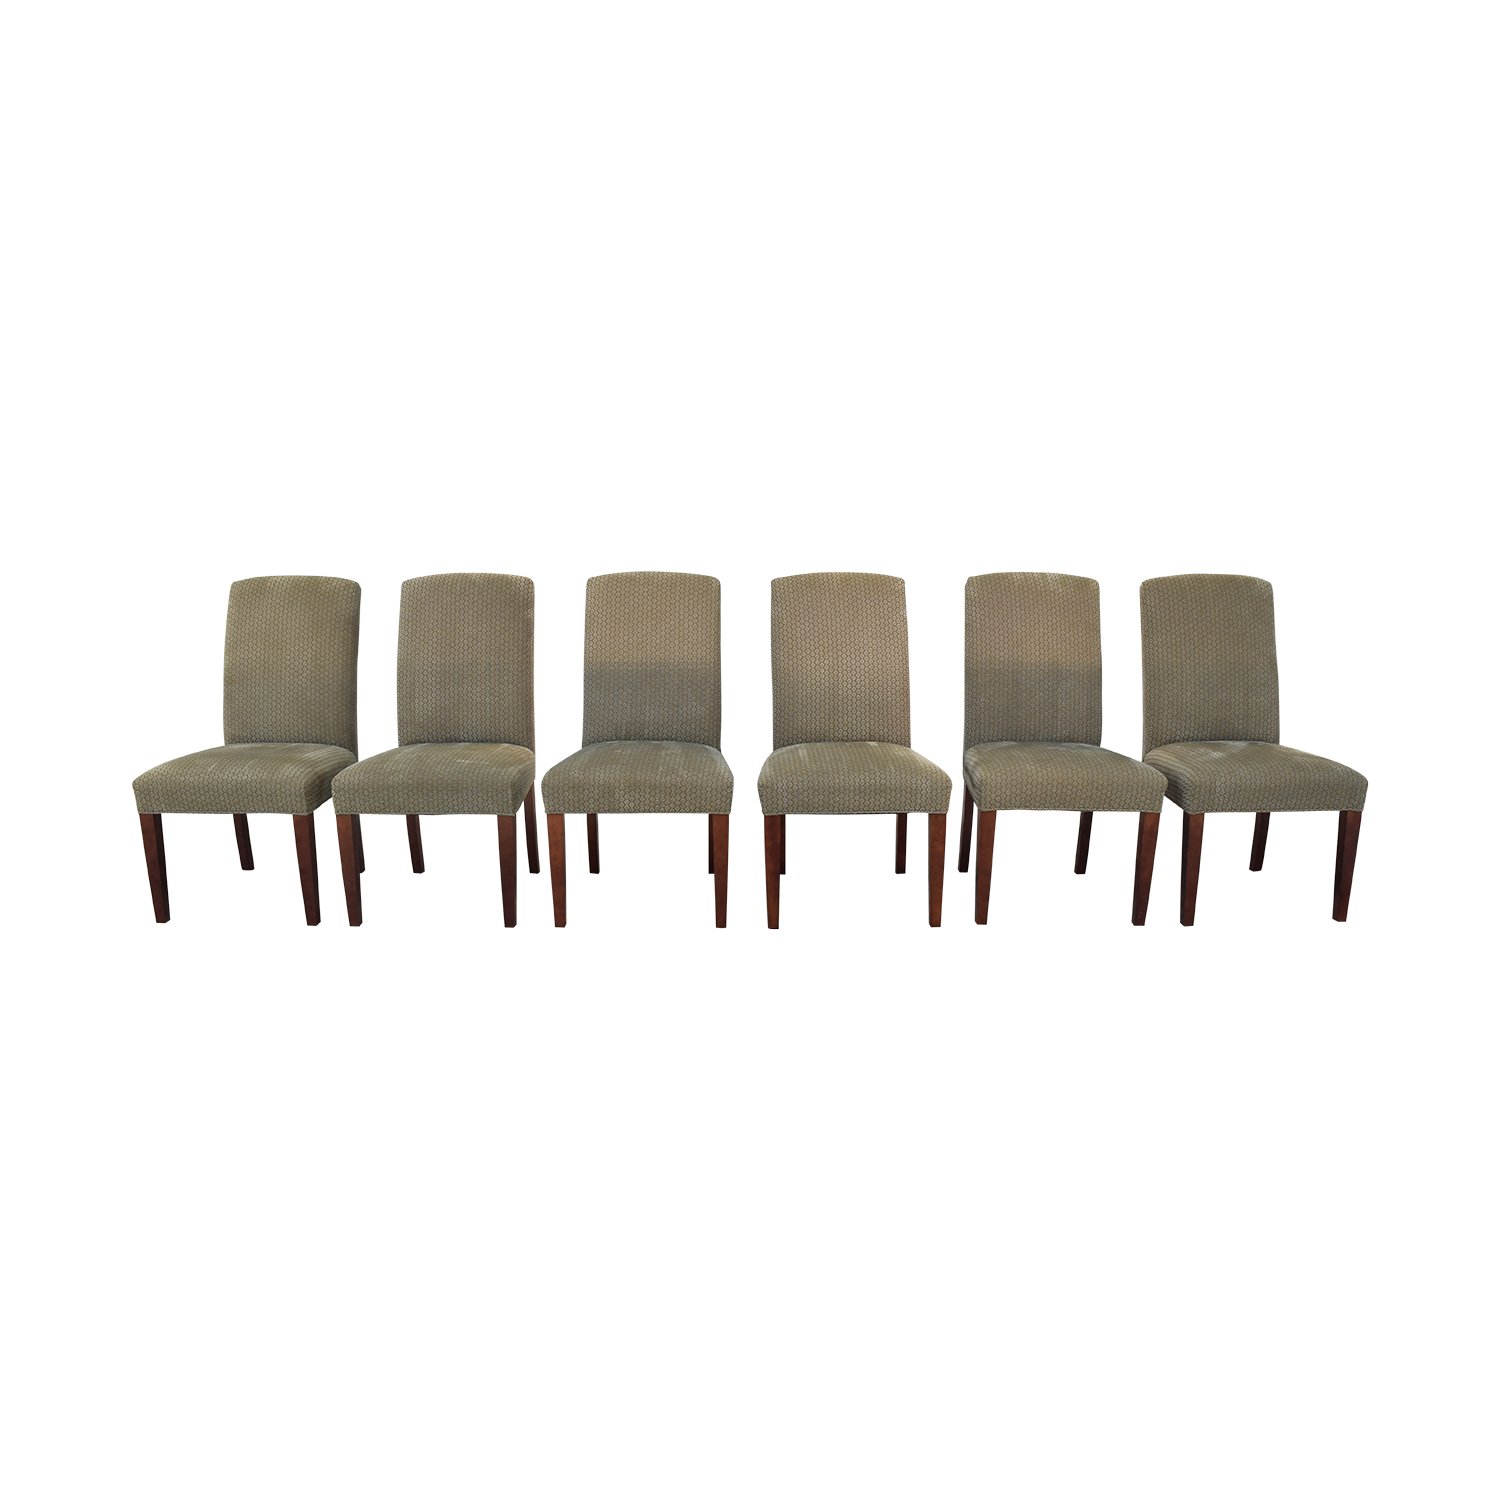 Crate & Barrel Crate & Barrel Dining Chairs Dining Chairs